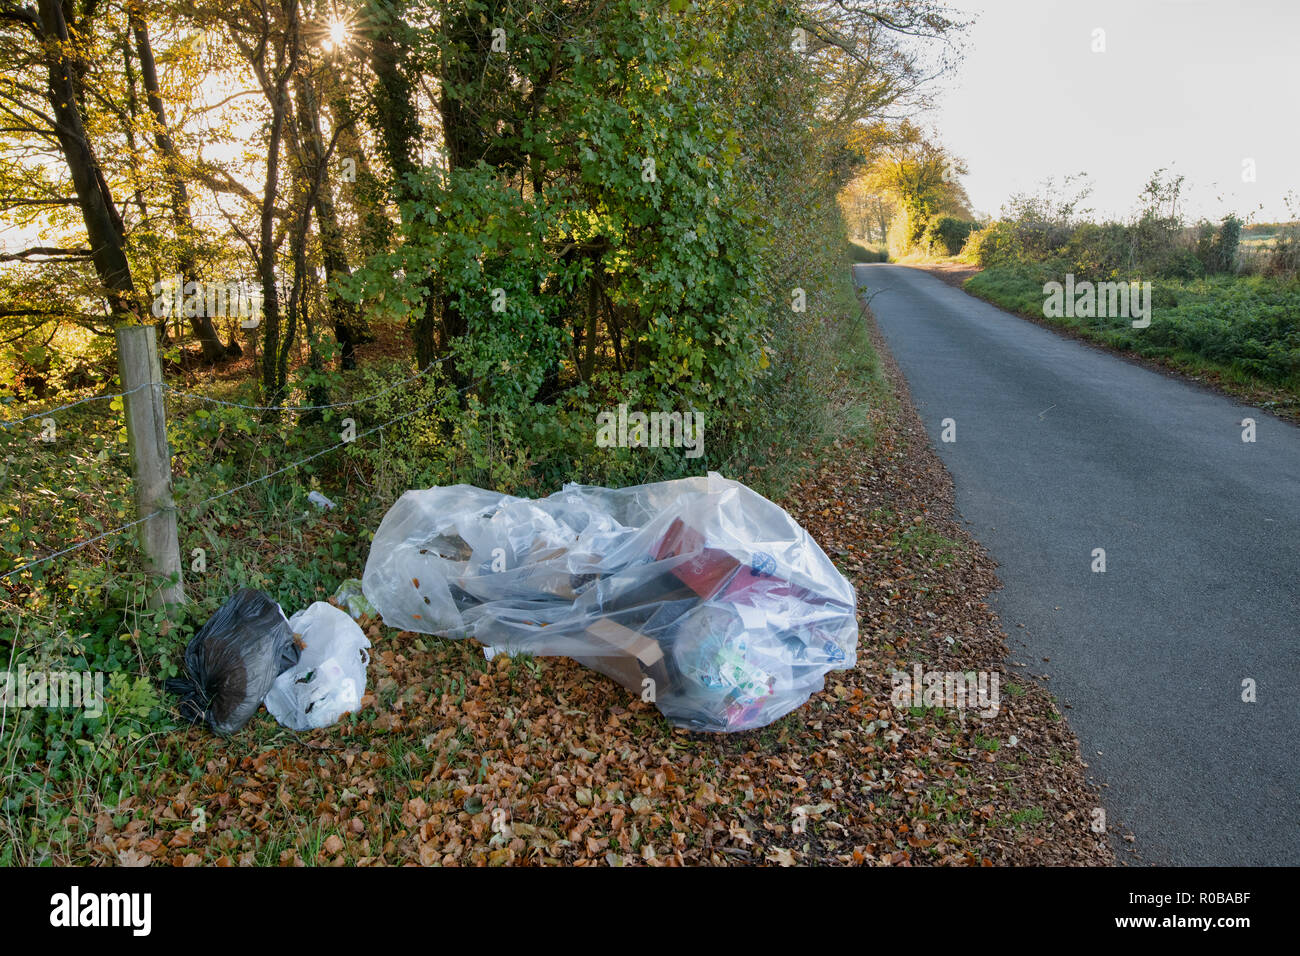 Fly tipped plastic and cardboard rubbish on a country road in the Cotswolds. The Slaughters, Cotswolds, Gloucestershire, England Stock Photo